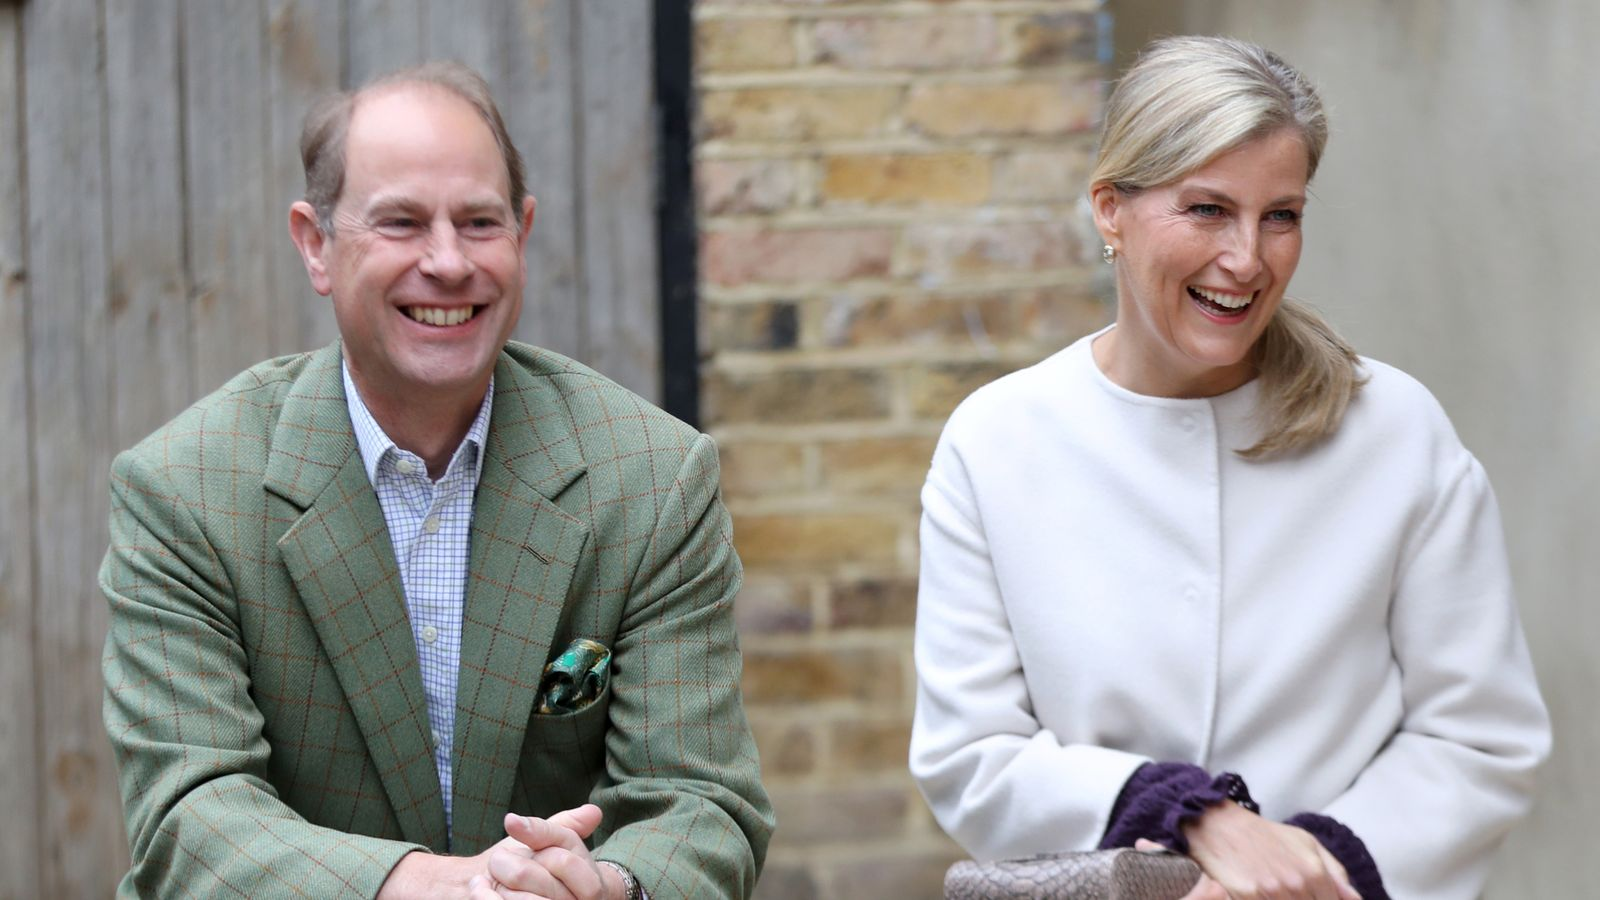 Harry and Meghan: 'Oprah who?' - Prince Edward and Sophie, Countess of Wessex, joke about bombshell interview